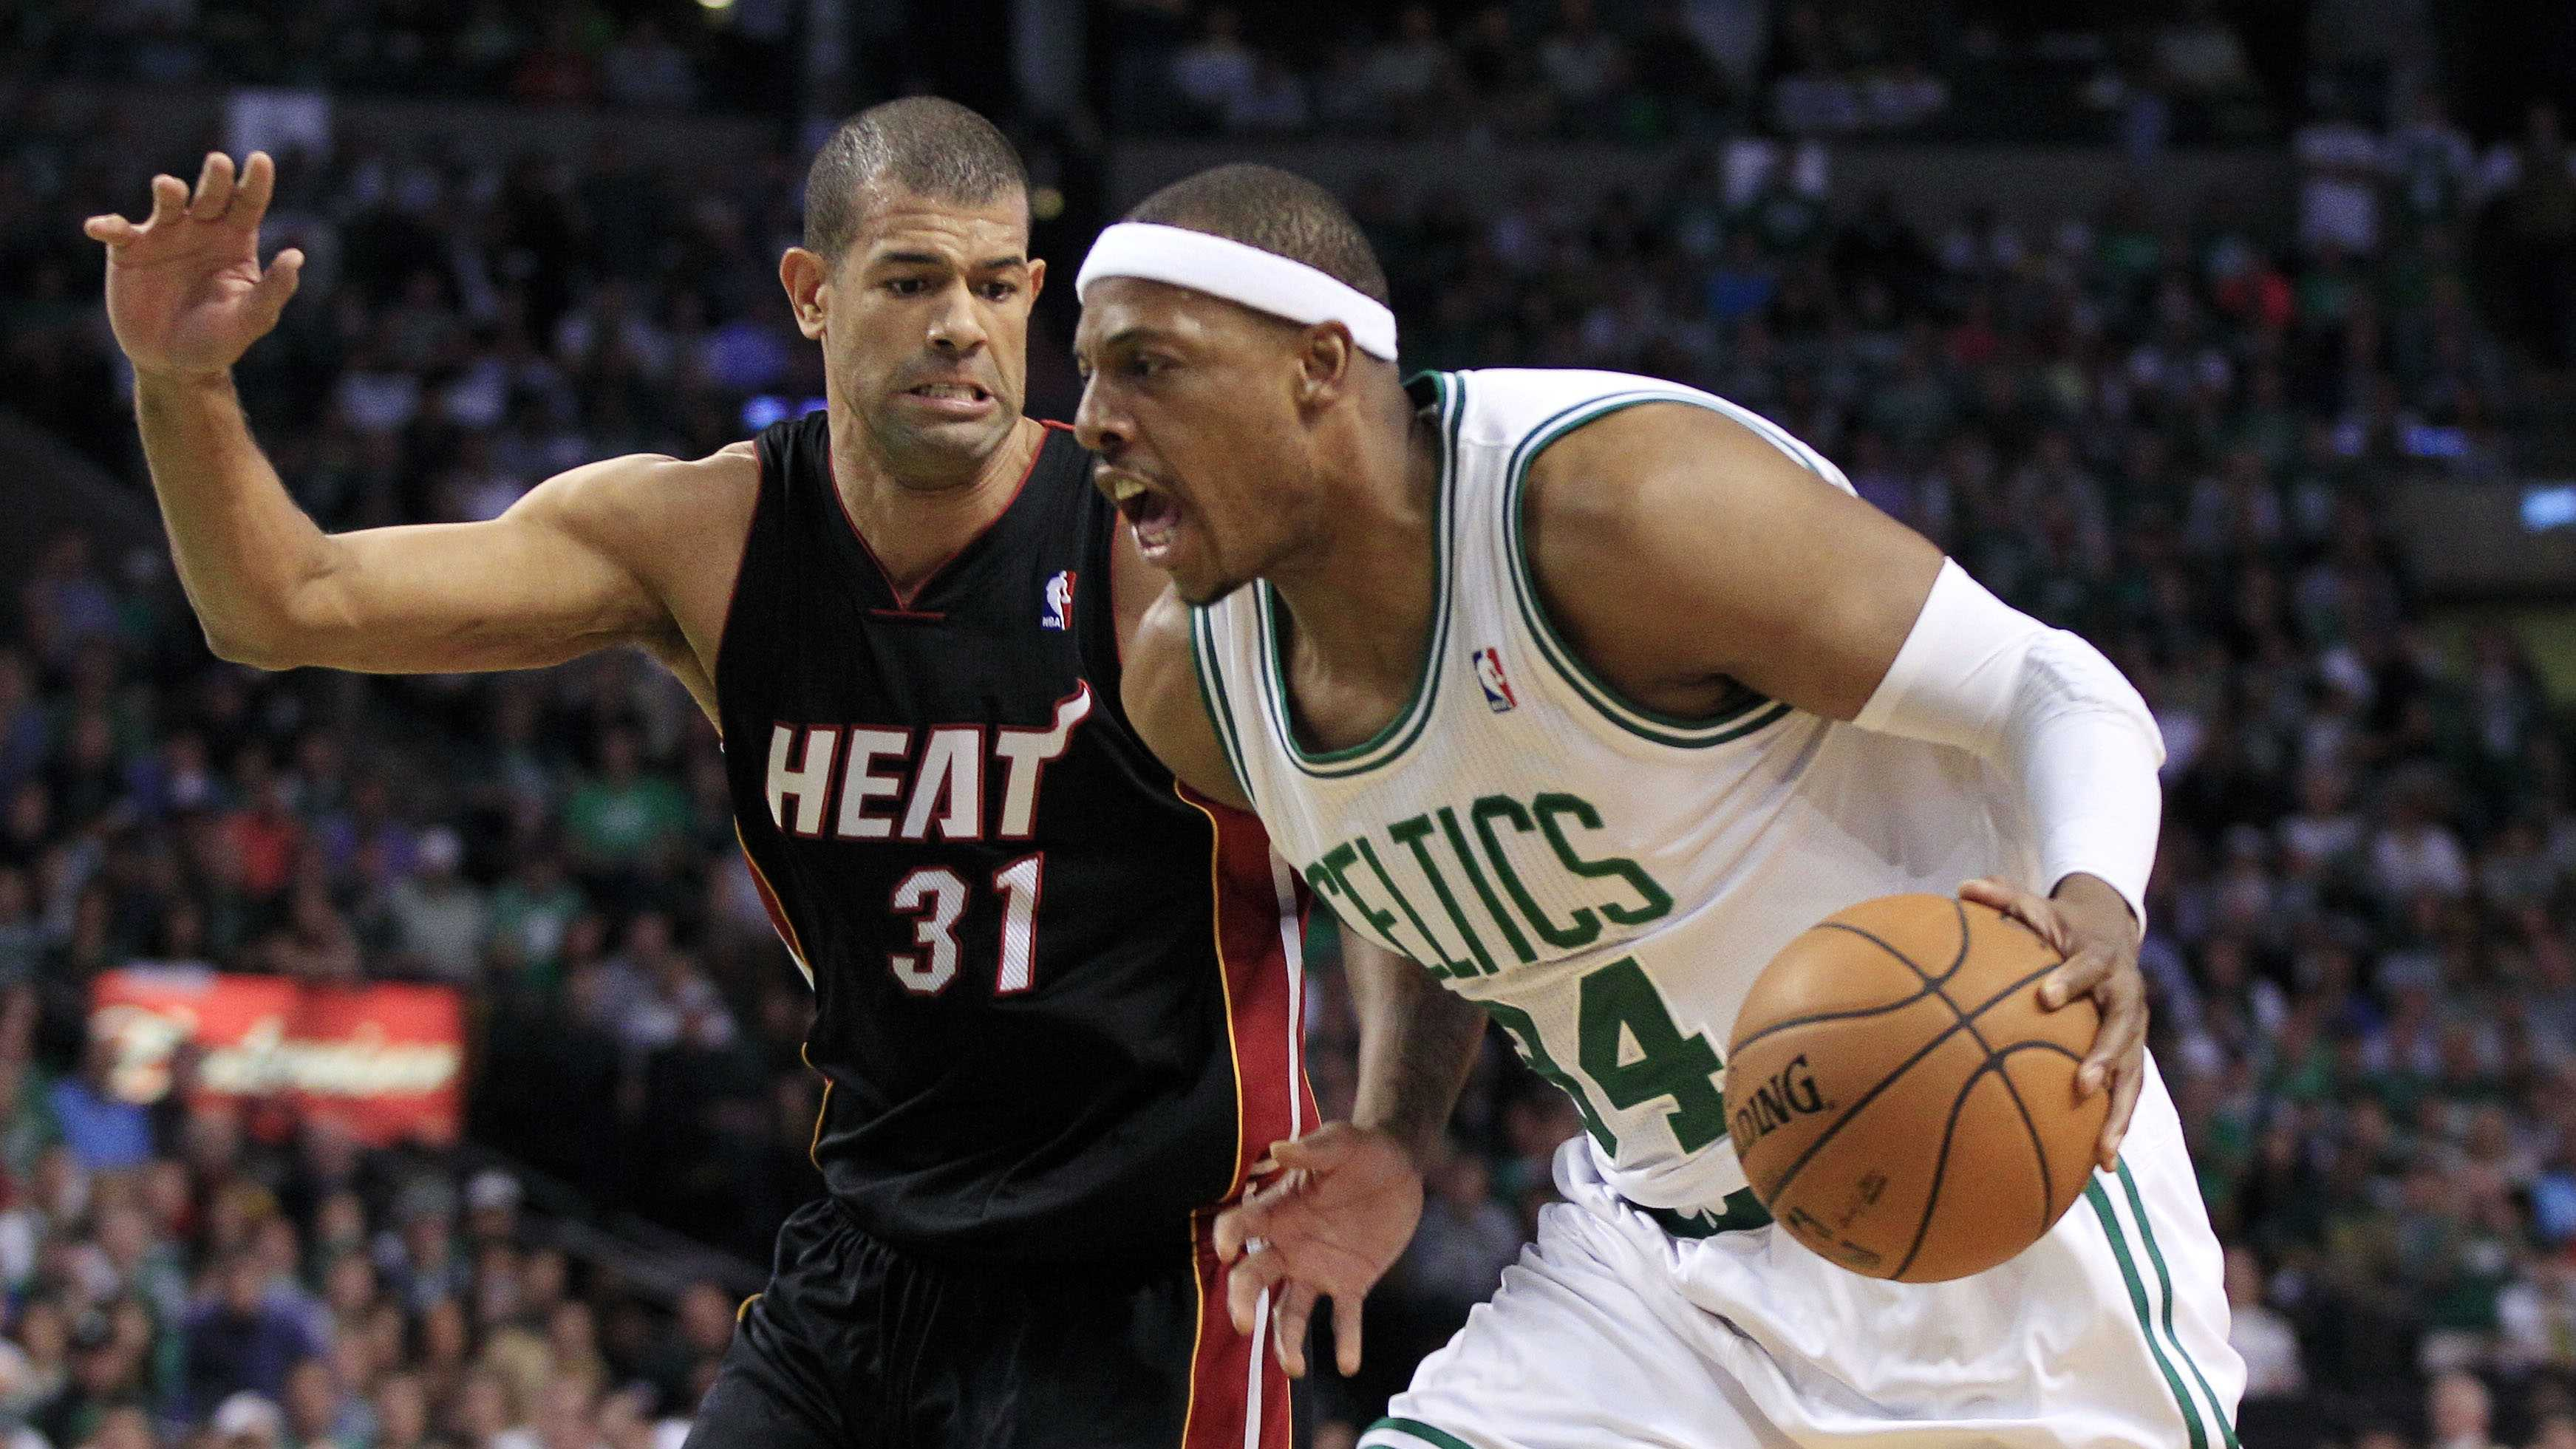 Paul Pierce drives against Miami Heat forward Shane Battier during the first quarter of Game 3 in the NBA basketball playoffs Eastern Conference finals.